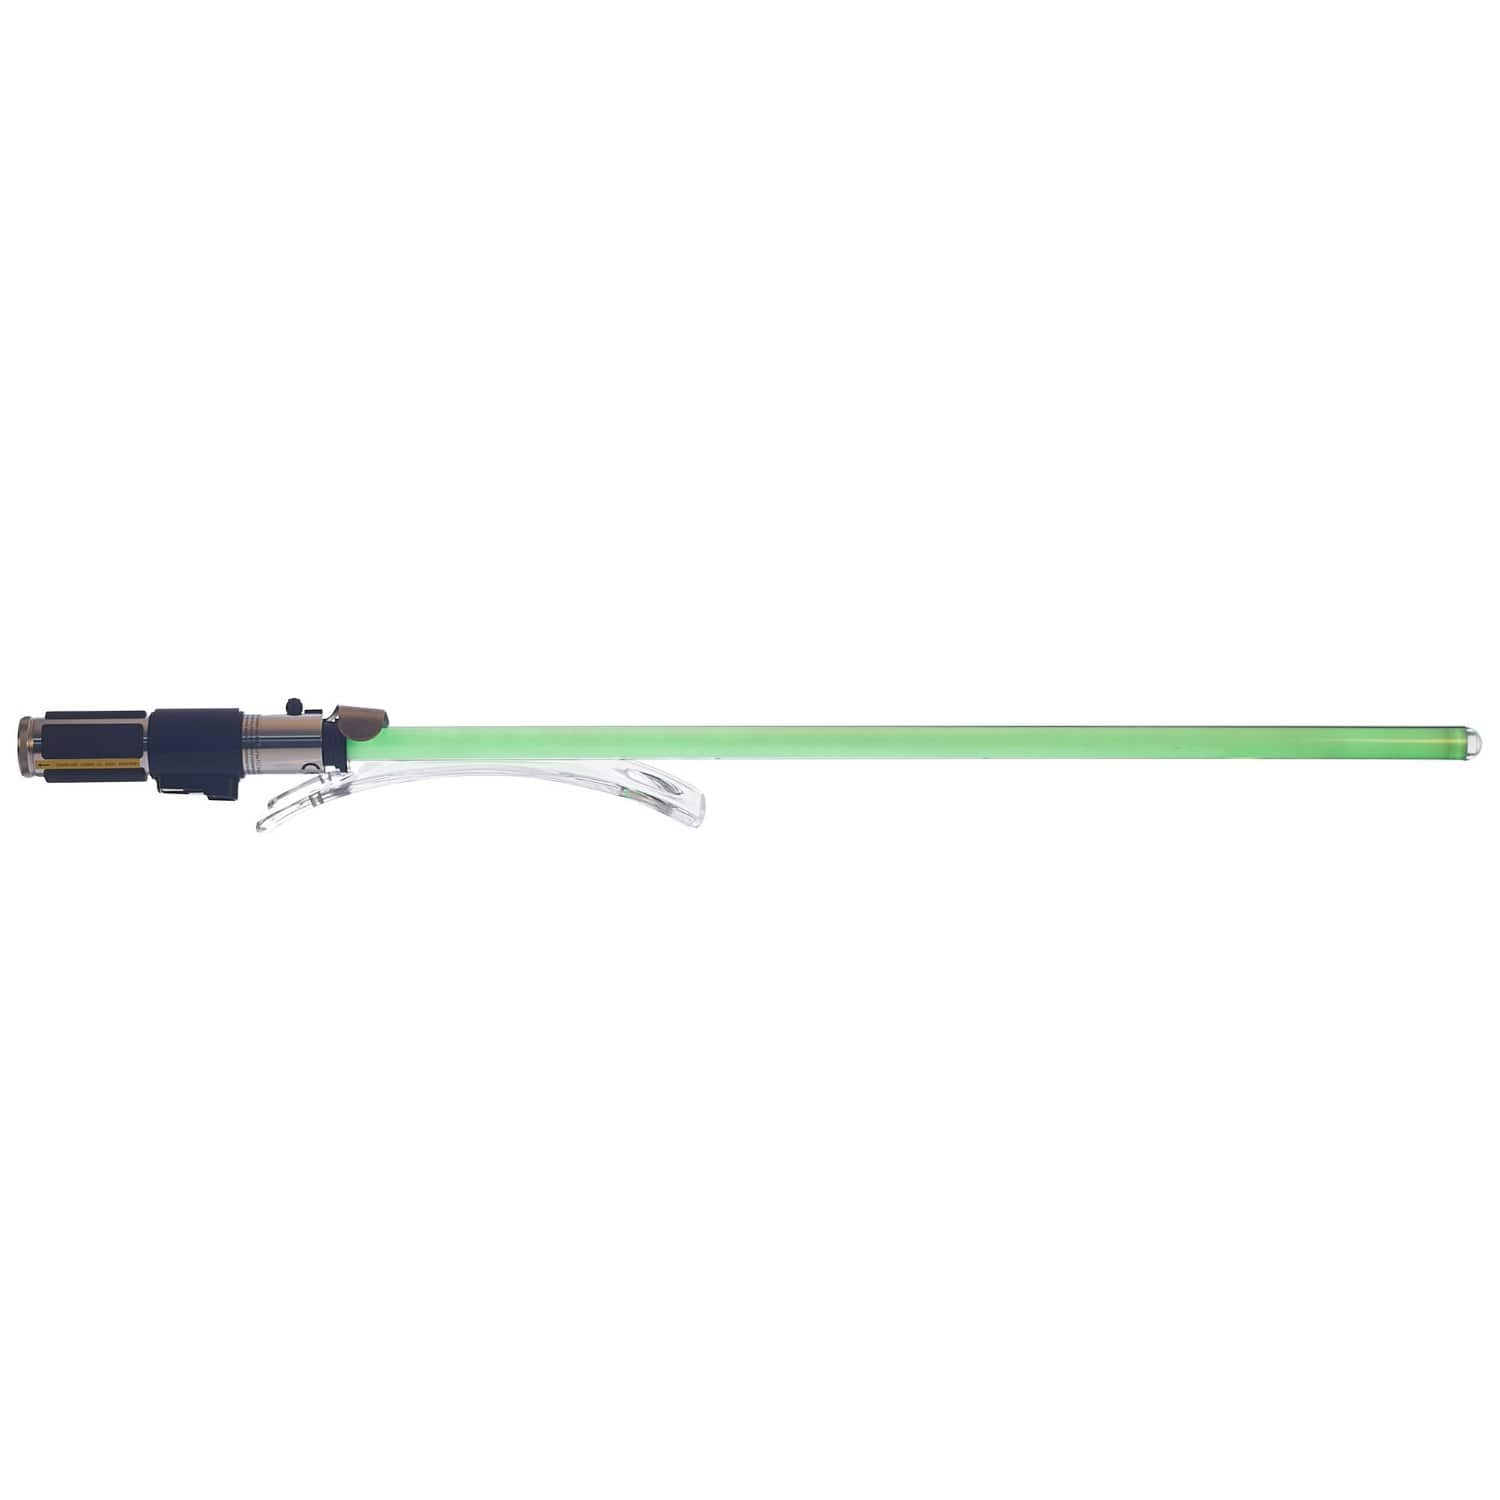 Star Wars - The Black Series Yoda Force FX Lightsaber - $105 - Amazon